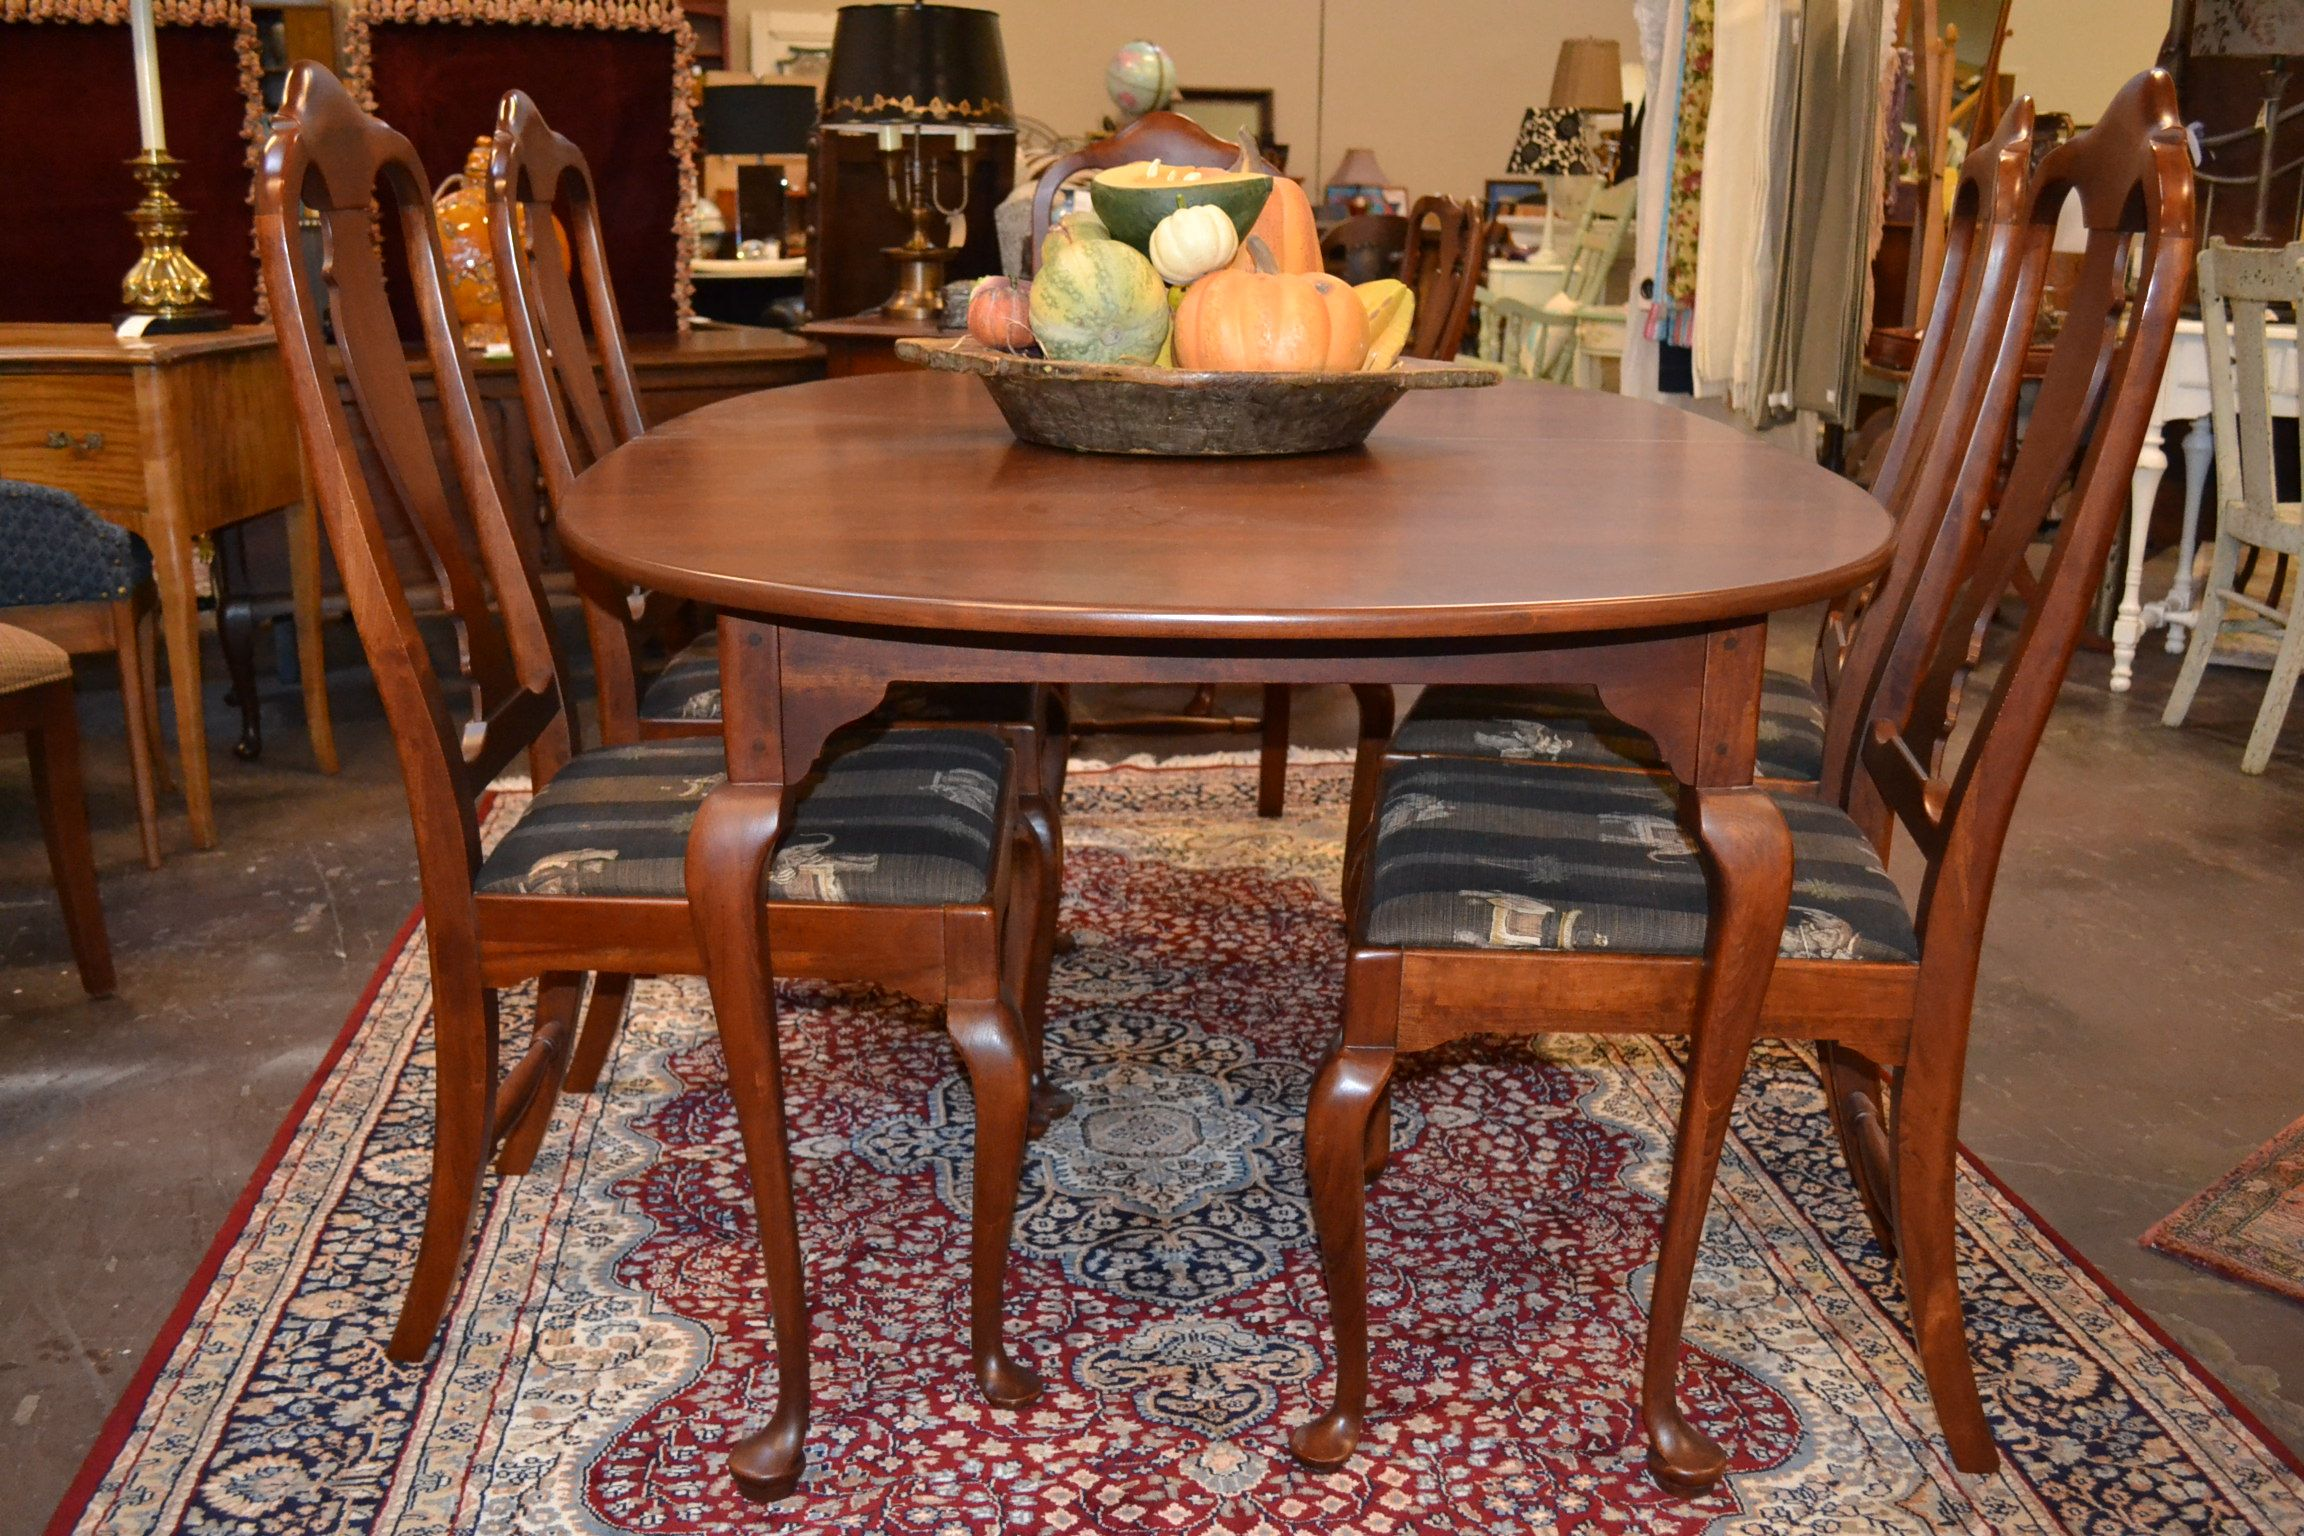 Lexington Dining Chairs Curved Lounge Chair Plans Solid Cherry Bob Timberlake Set French